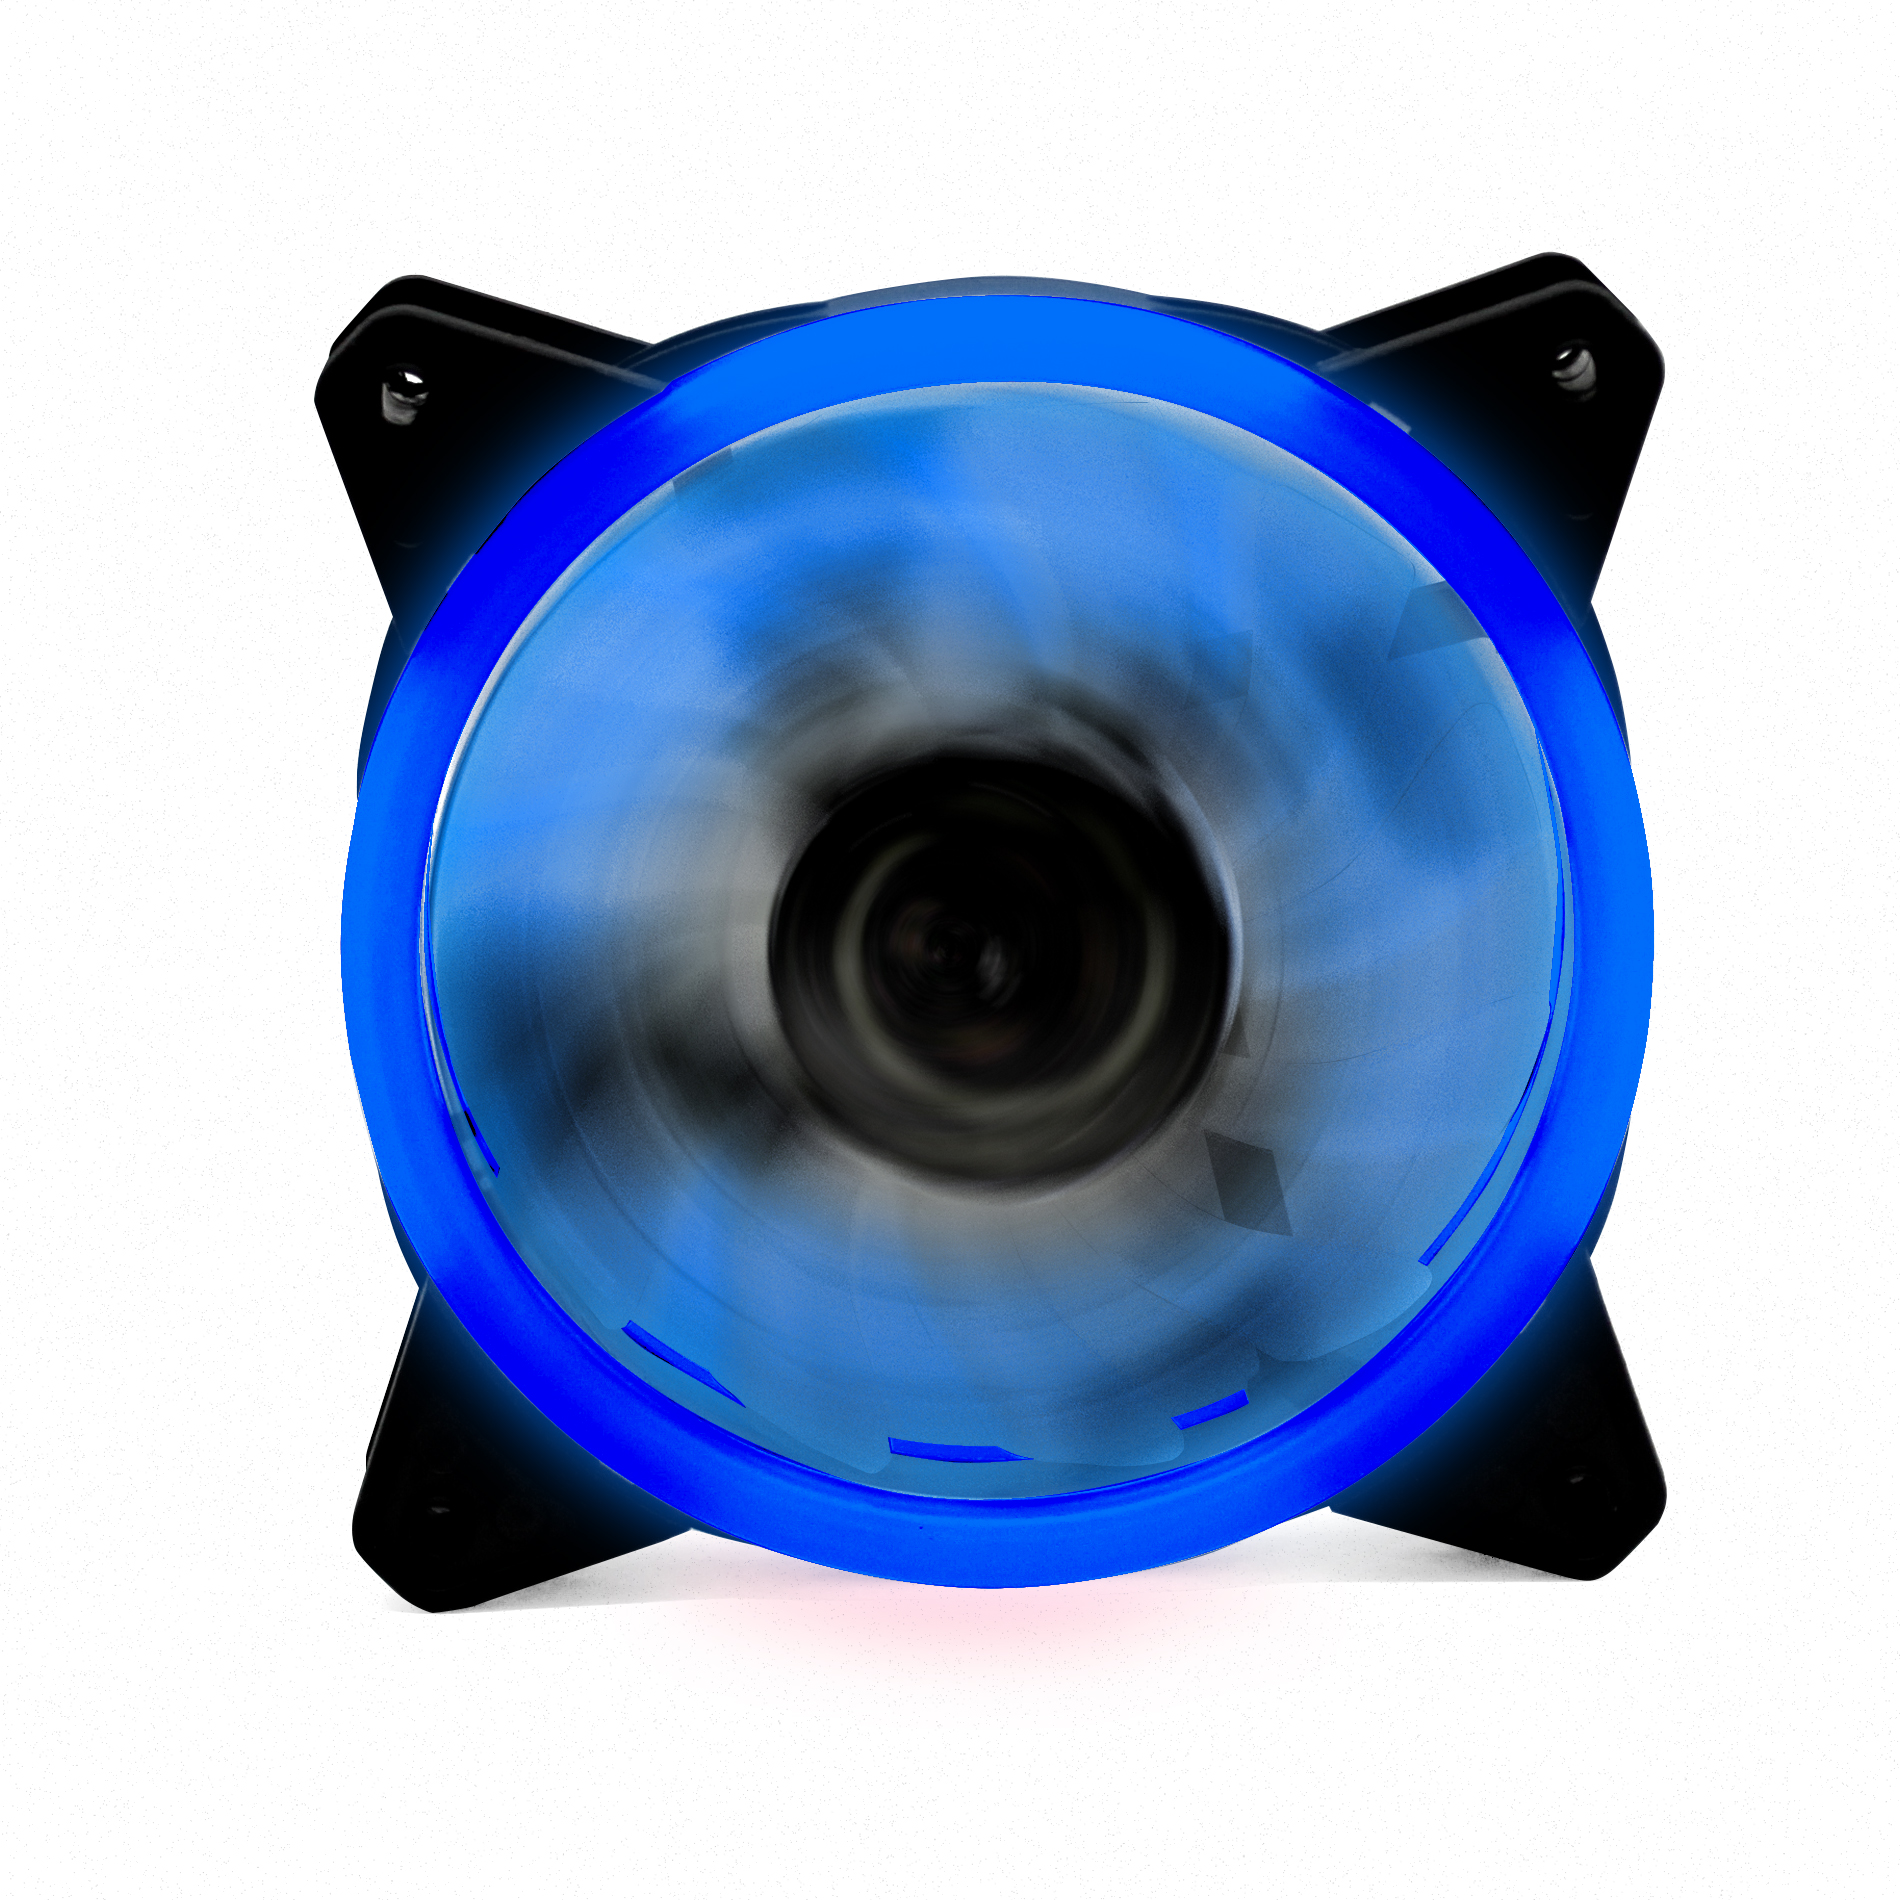 VENTILADOR PHOENIX LED AZUL GAMING 120MM DOBLE ANILLO